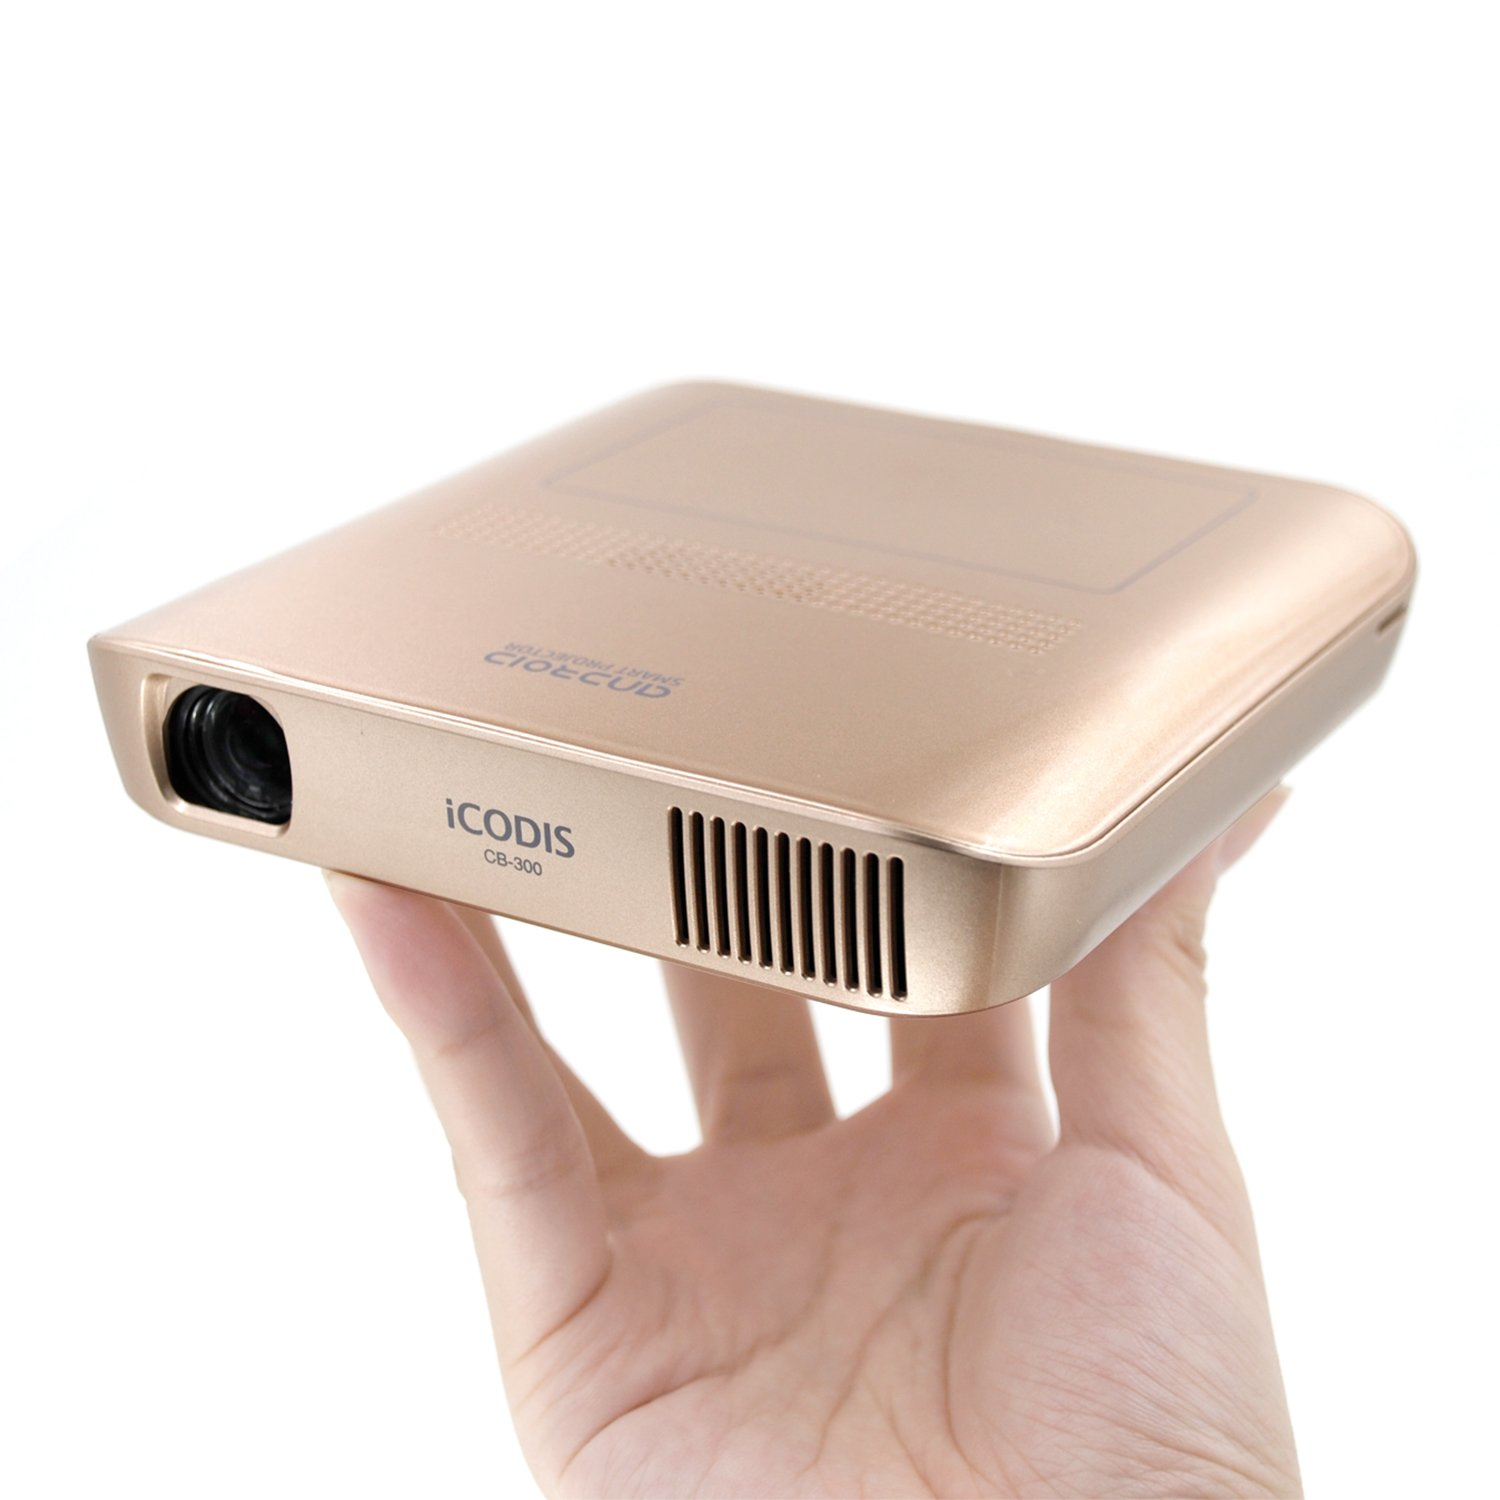 iCODIS CB-300 Pico Projector 3D HD Video with DLP 1800 Lumen, Mini HDMI,30,000 Hour Led Life, Mobile Pocket Movie and Entertainment Home Theater